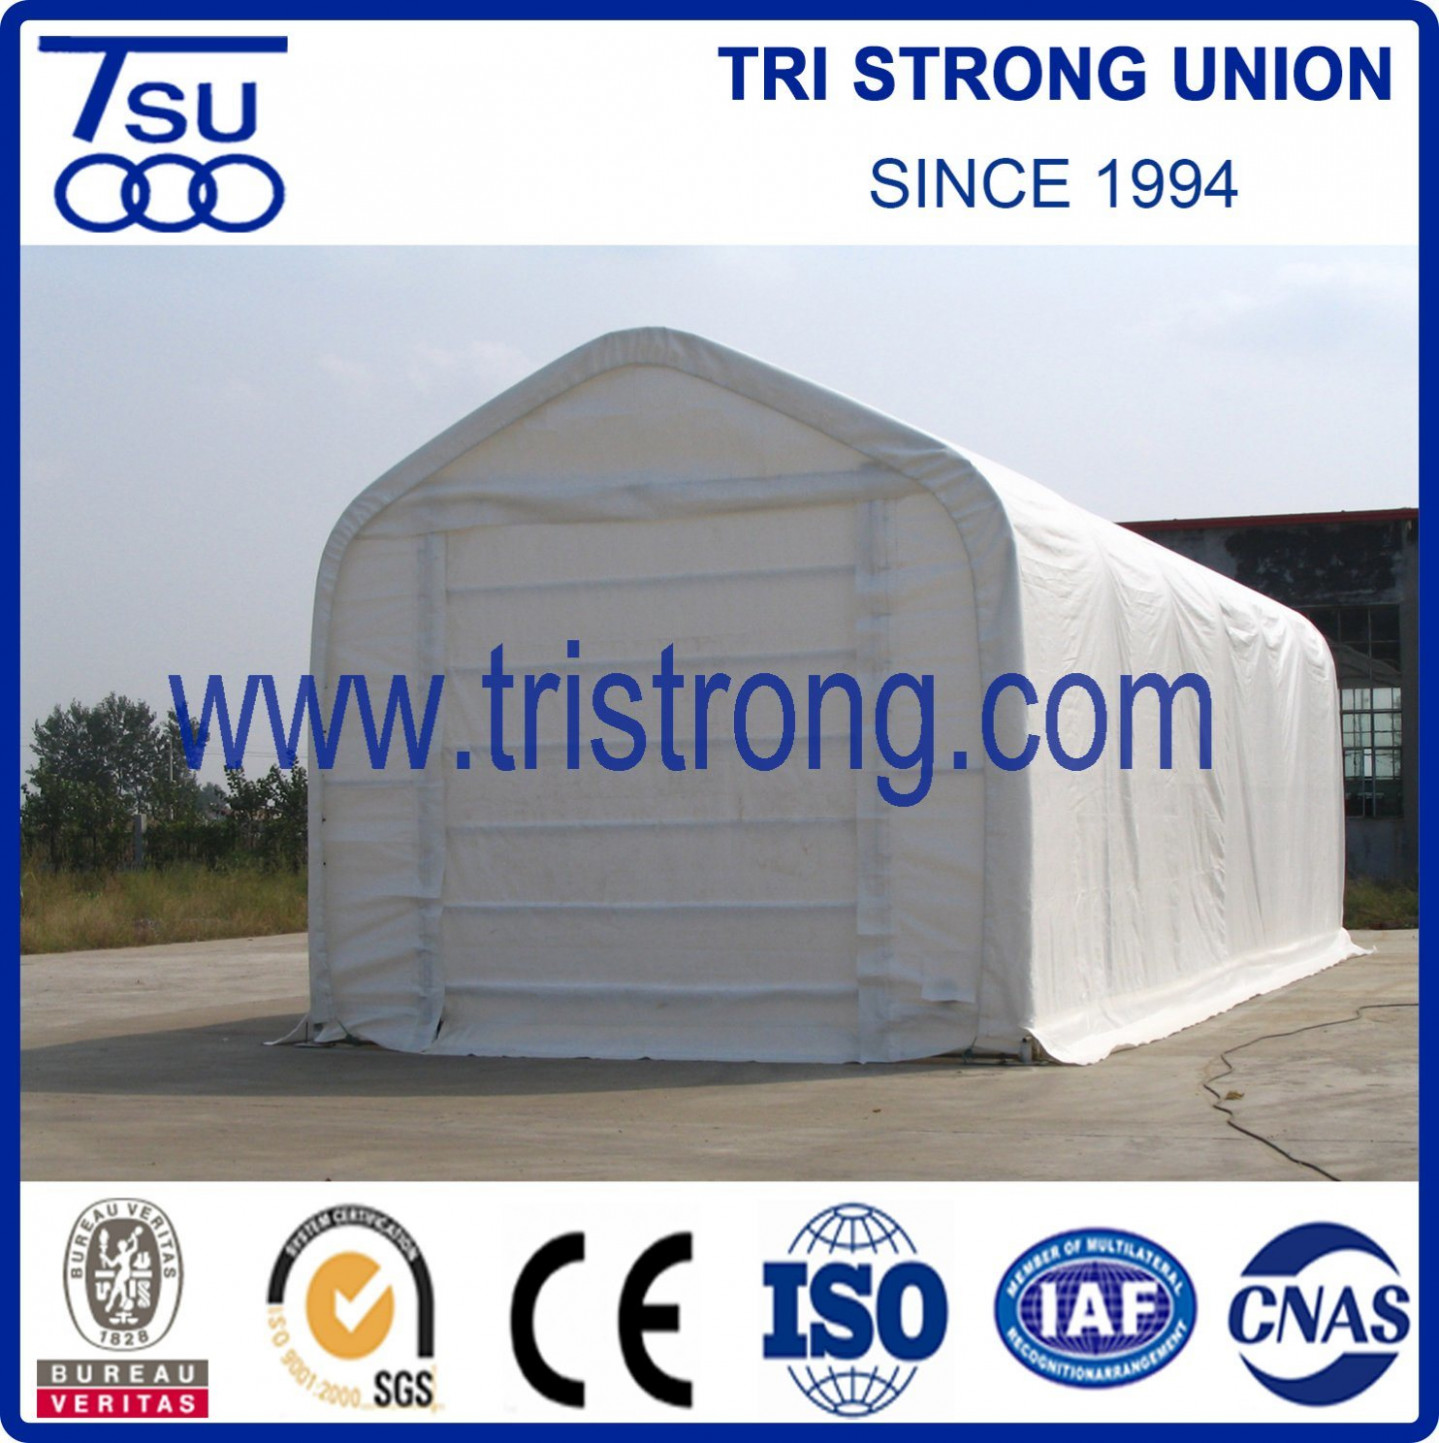 [Hot Item] Shelter/Large Portable Bus Carport/Bus Tent/Bus Parking Shed (TSU 12) Dome Carport Canopy